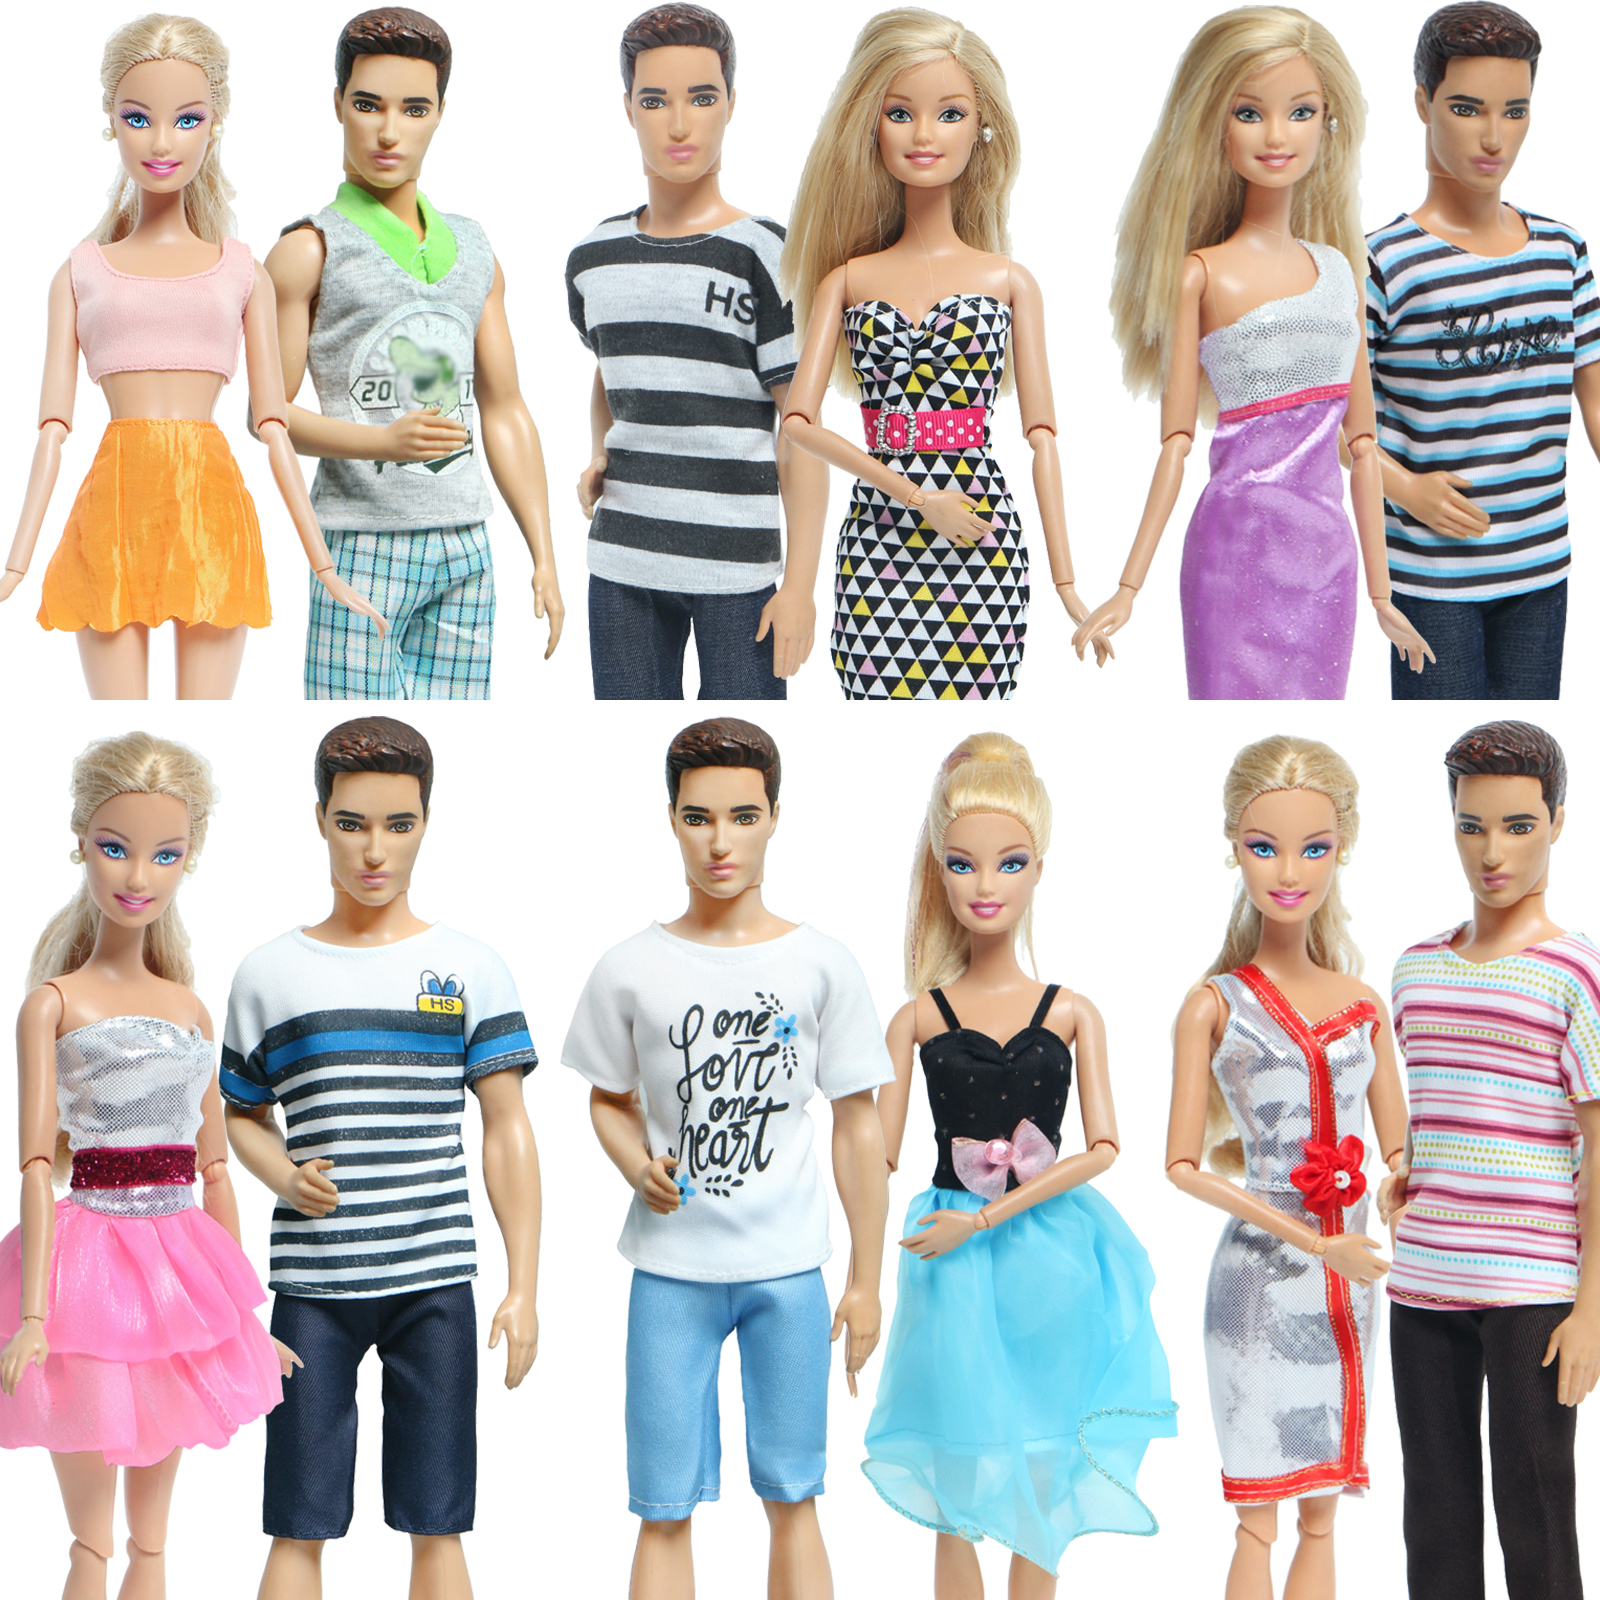 2 Pcs Outfits /Set Summer Doll Dress Colorful Mini Short Gown Skirt For Barbie Doll + Ken Doll T-shirt Pants Clothes Accessories